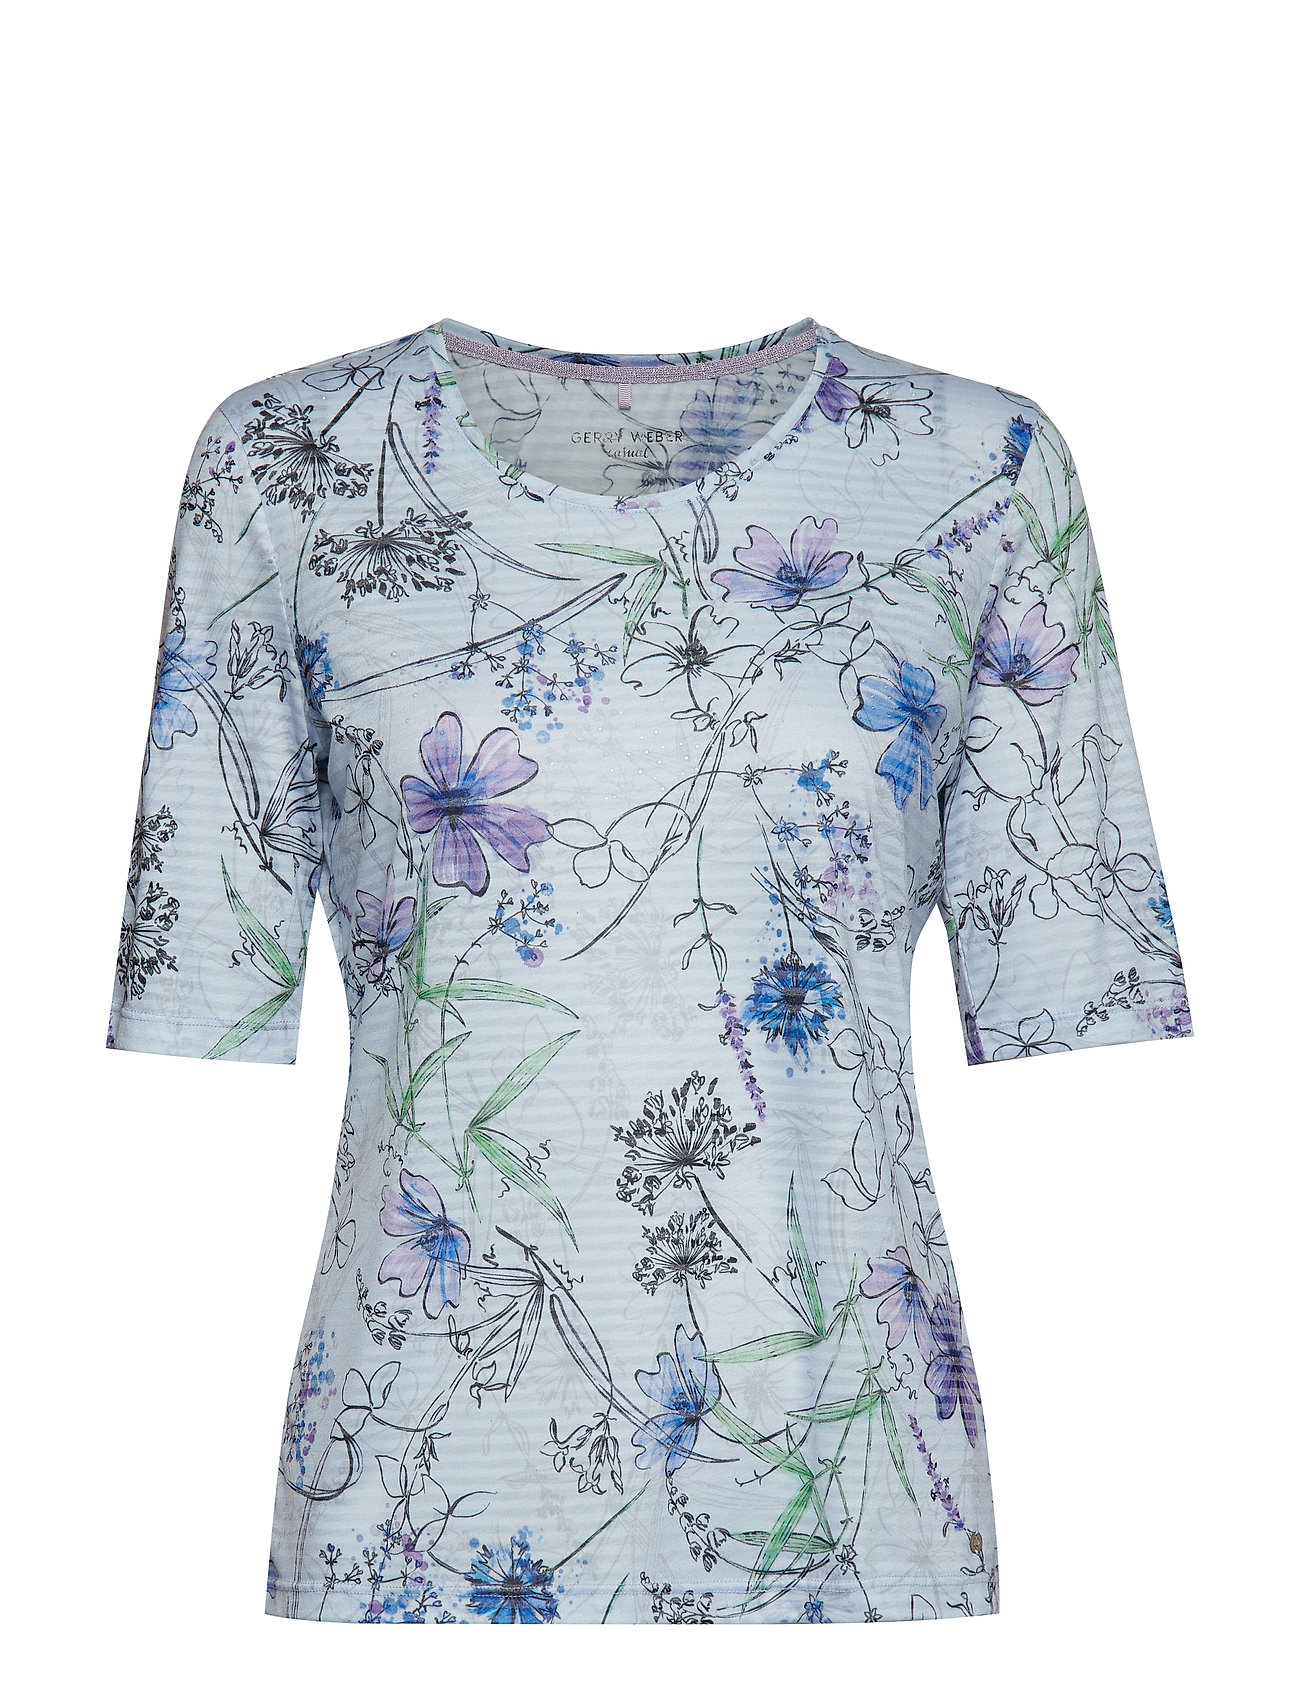 Gerry Weber Edition T-SHIRT 3/4-SLEEVE R - BLUE/LILAC/PINK PRINT